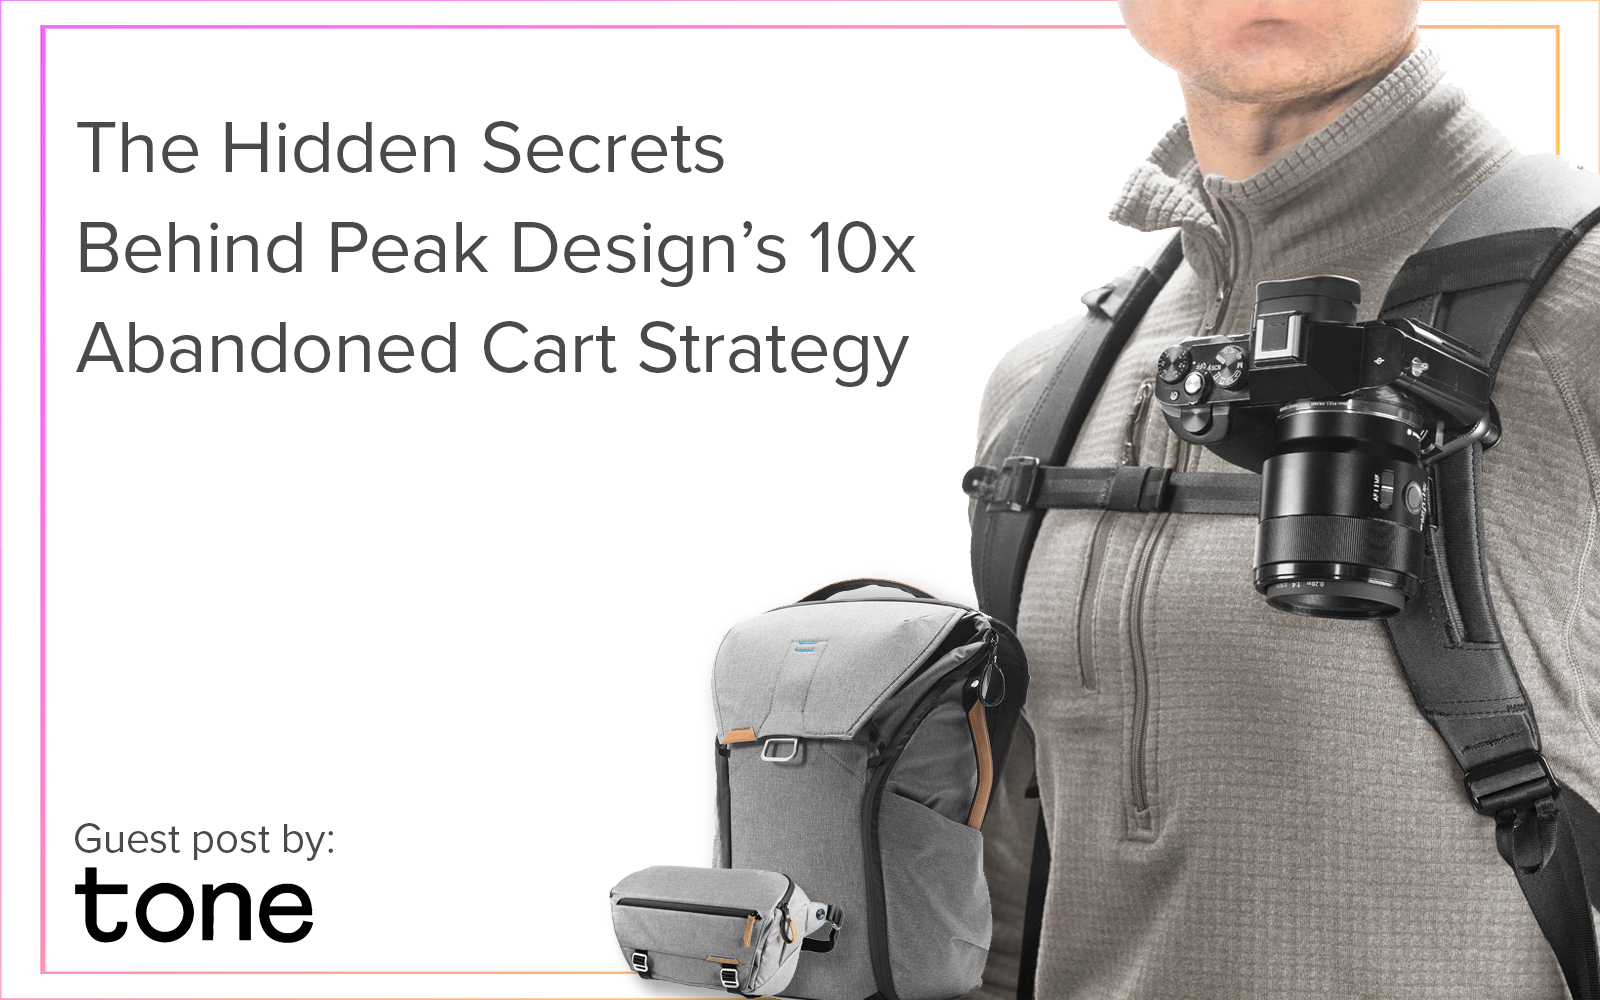 THE HIDDEN SECRETS BEHIND PEAK DESIGN'S 10X ABANDONED CART STRATEGY